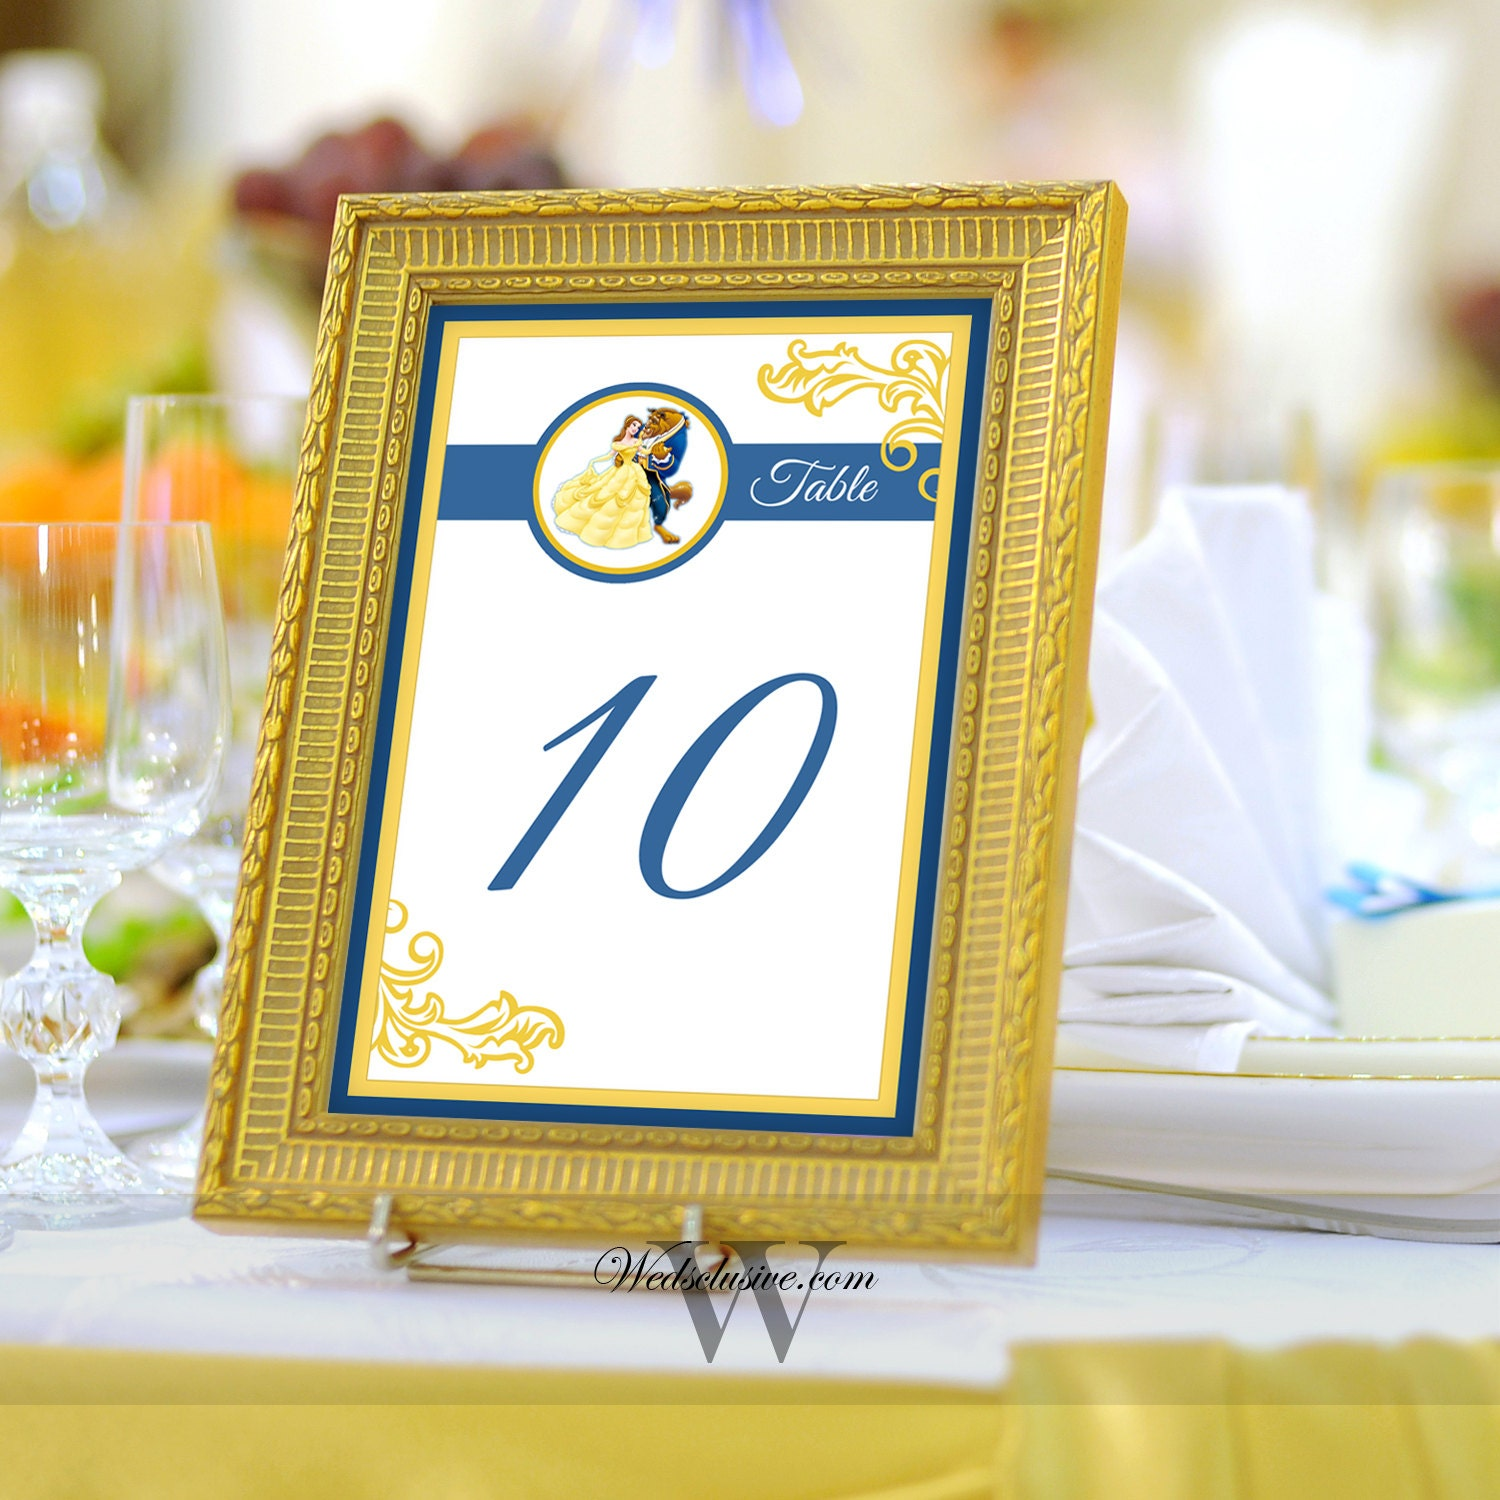 Beauty and the beast table numbers disney wedding table for Table numbers